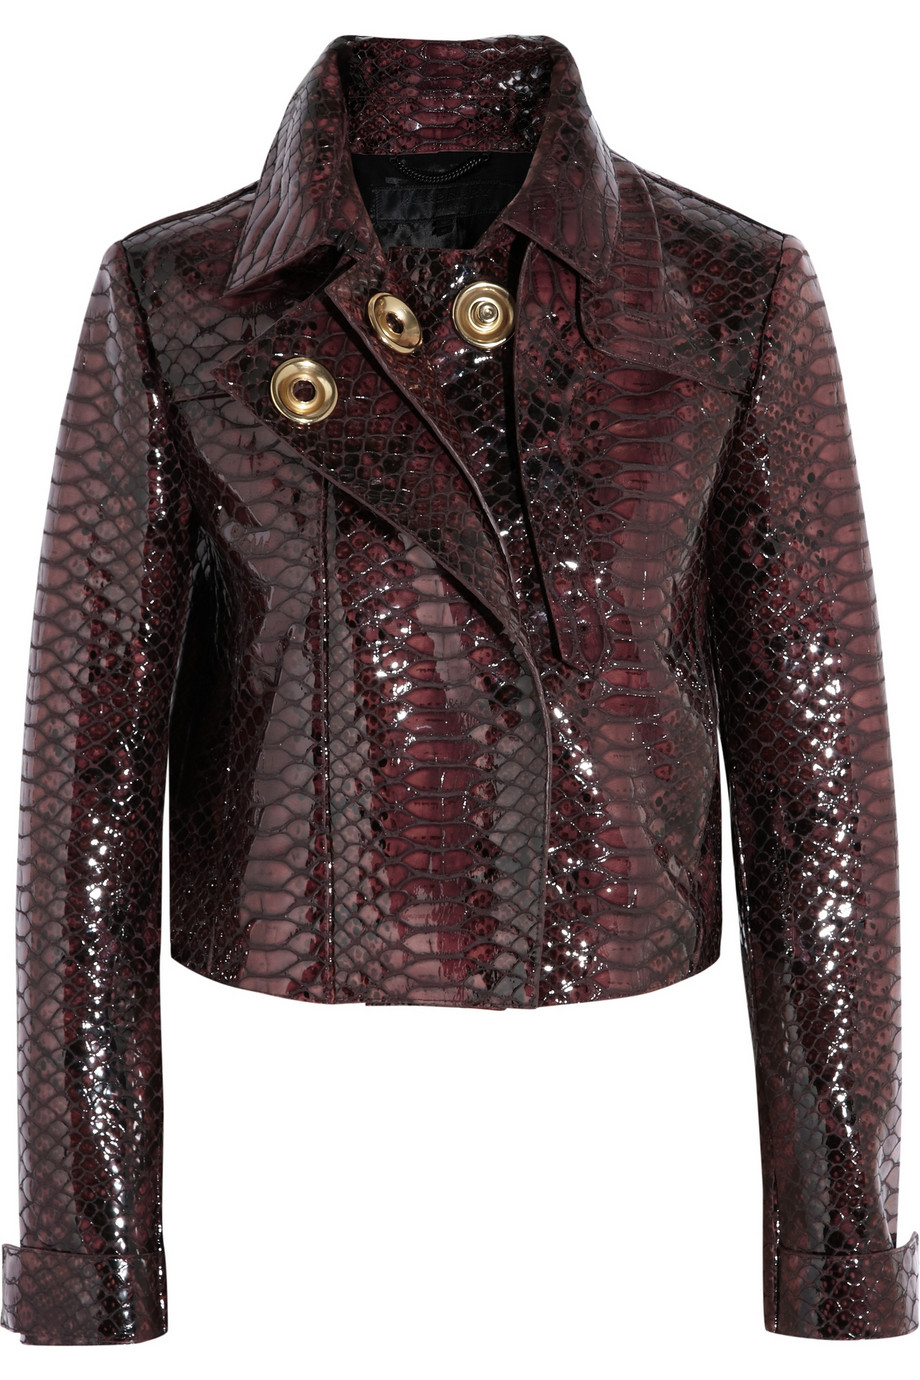 Burberry Prorsum Cropped Croc Effect Glossed Leather